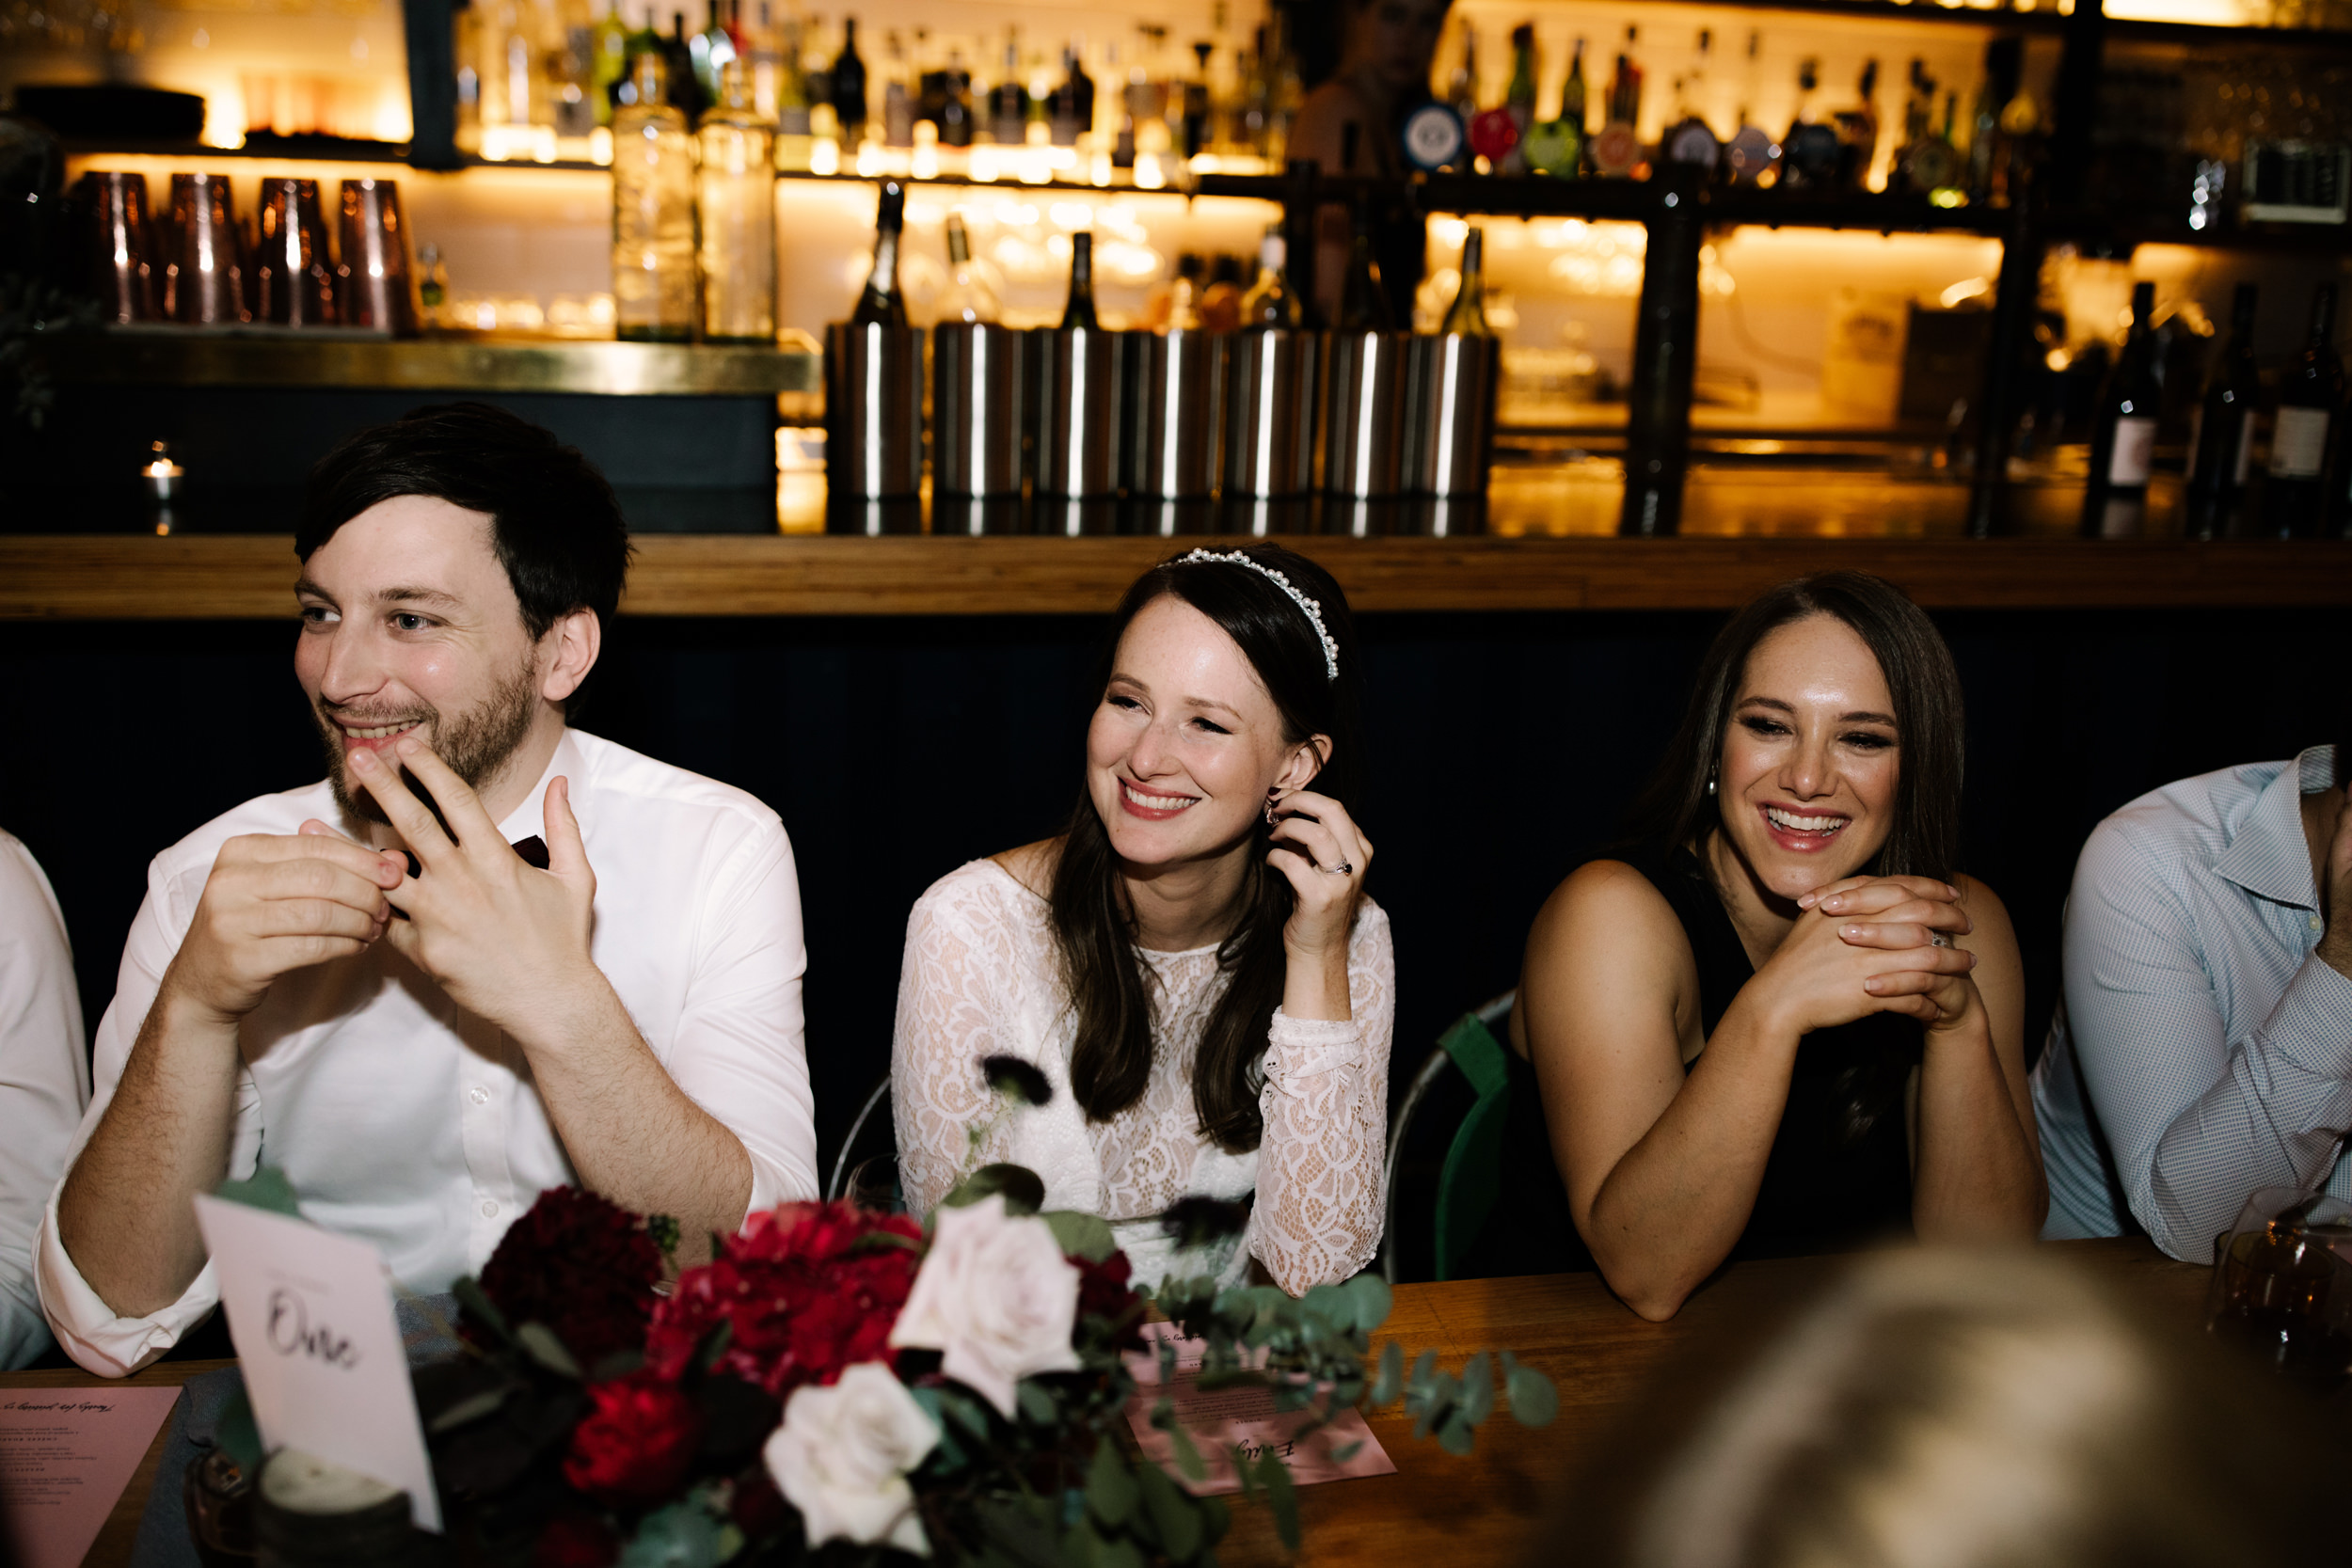 I_Got_You_Babe_Weddings_Emily_Matt_Rupert_Glasshaus_Melbourne0205.JPG